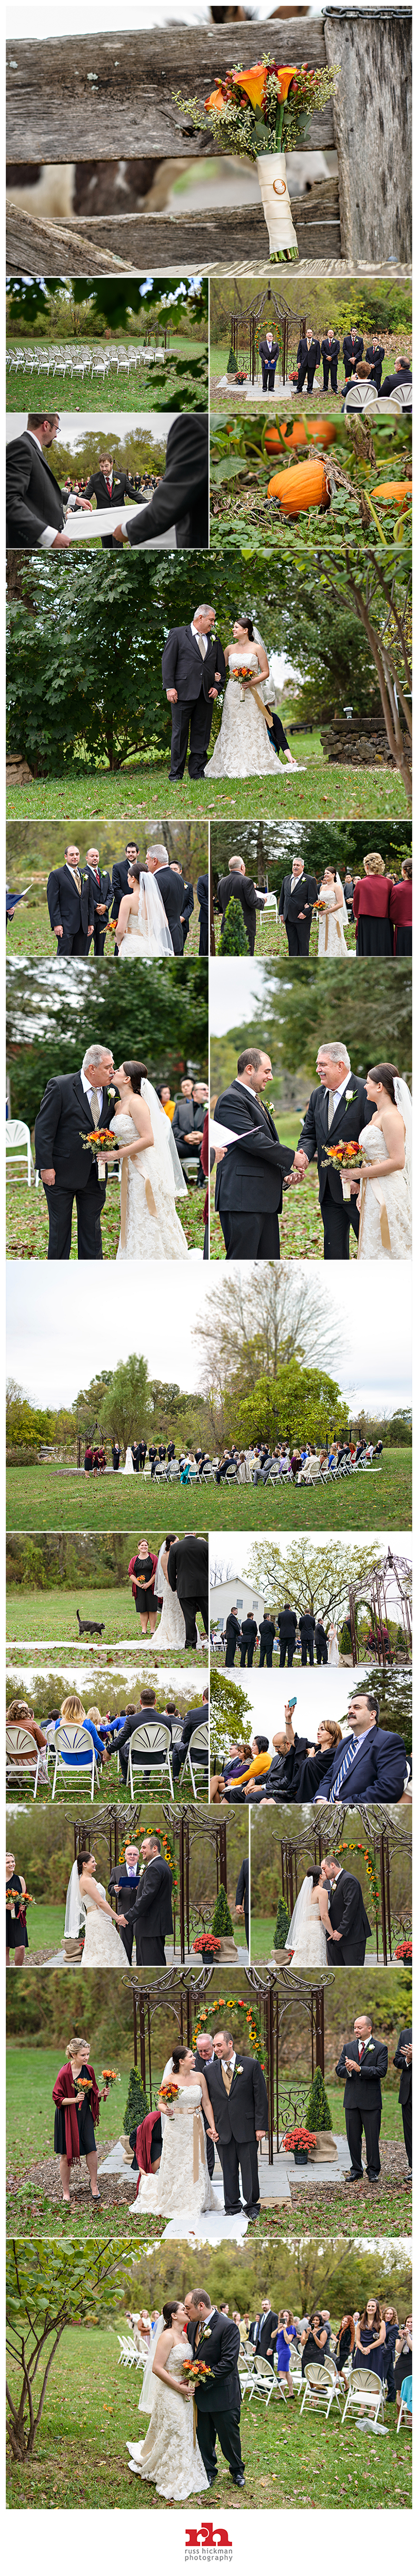 Philadelphia-Wedding-Photographer-TPW04